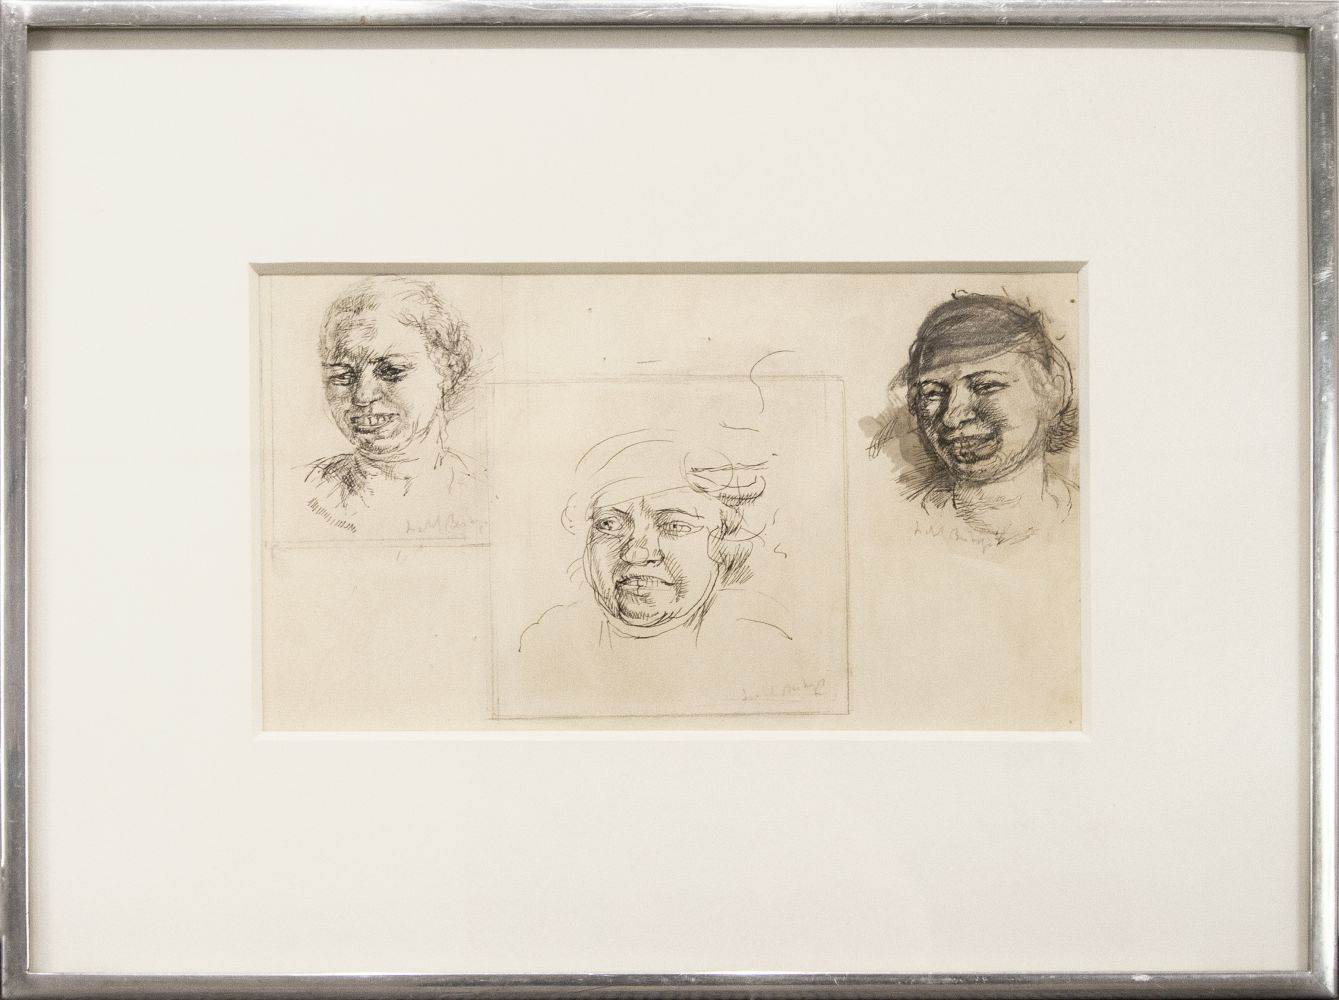 Isabel Bishop, Laughing Heads, Study Drawings, c. 1934, ink on paper, 7 x 9 1/4 inches